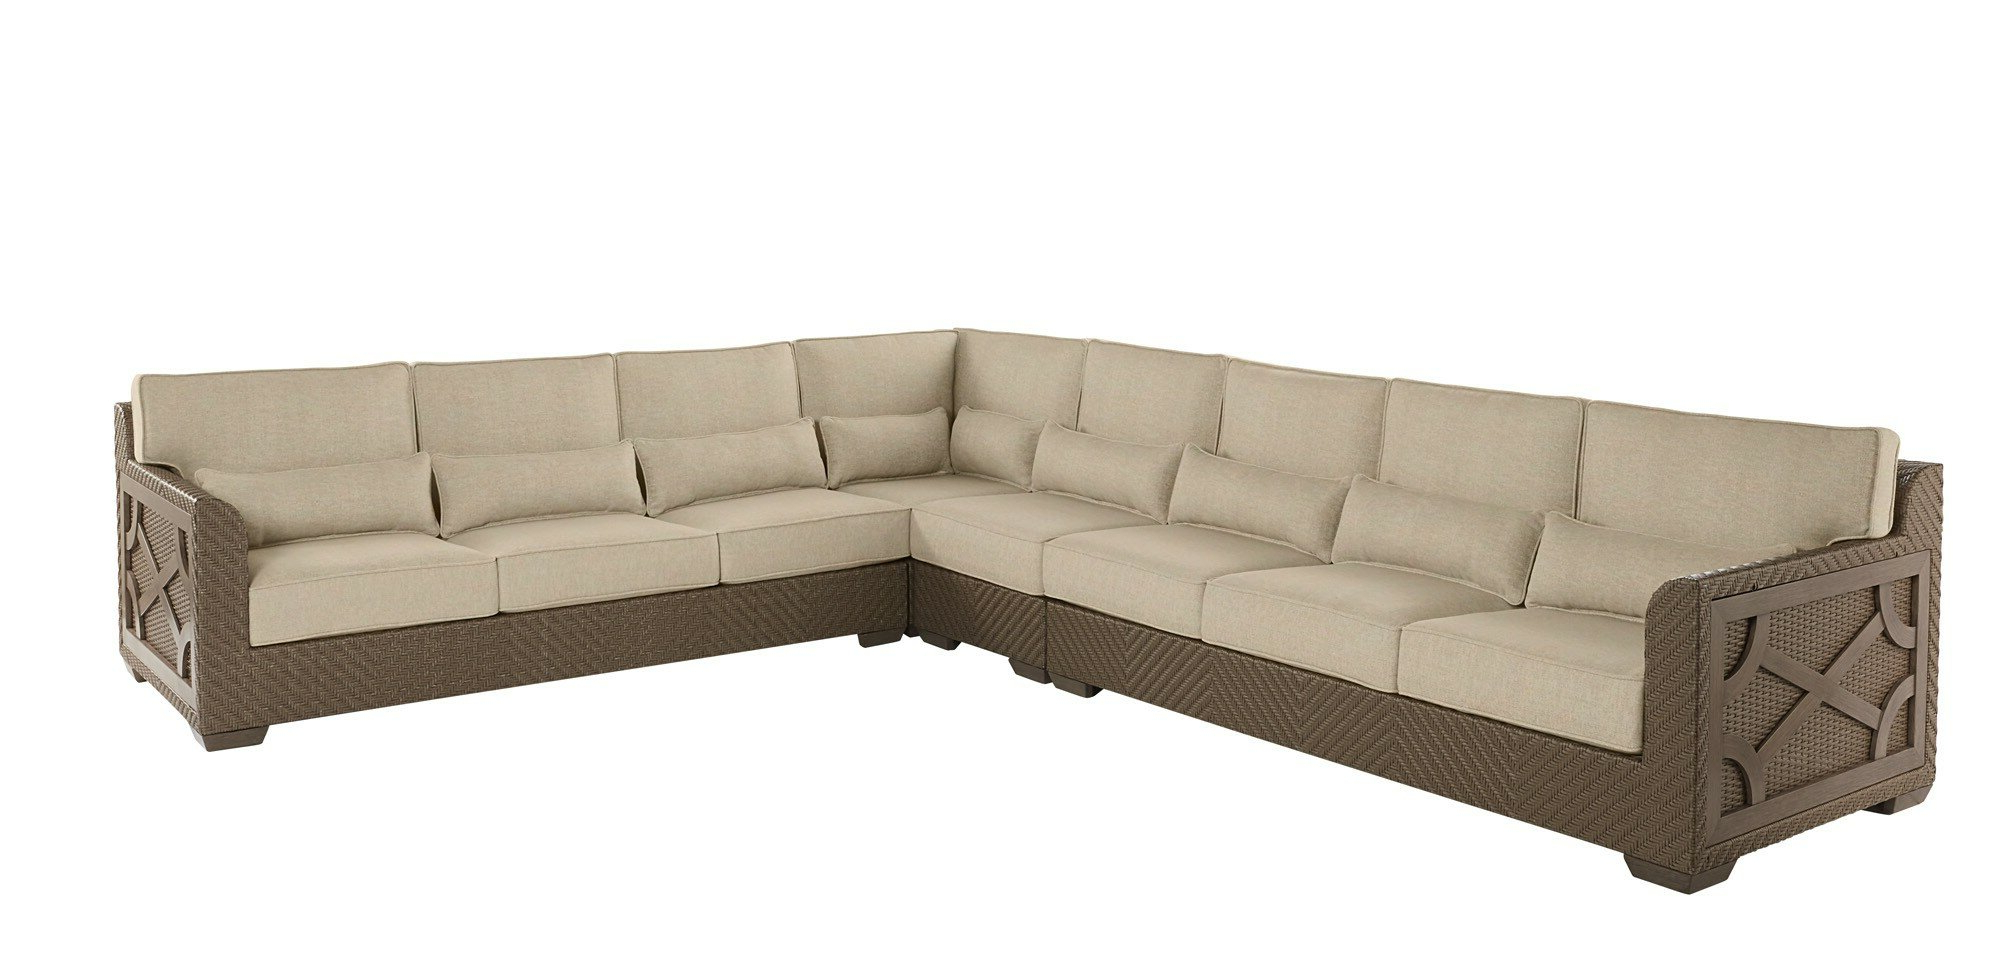 Well Liked Astrid Symmetrical Modular Sectional Inside Astrid Wicker Patio Sofas With Cushions (Gallery 6 of 25)